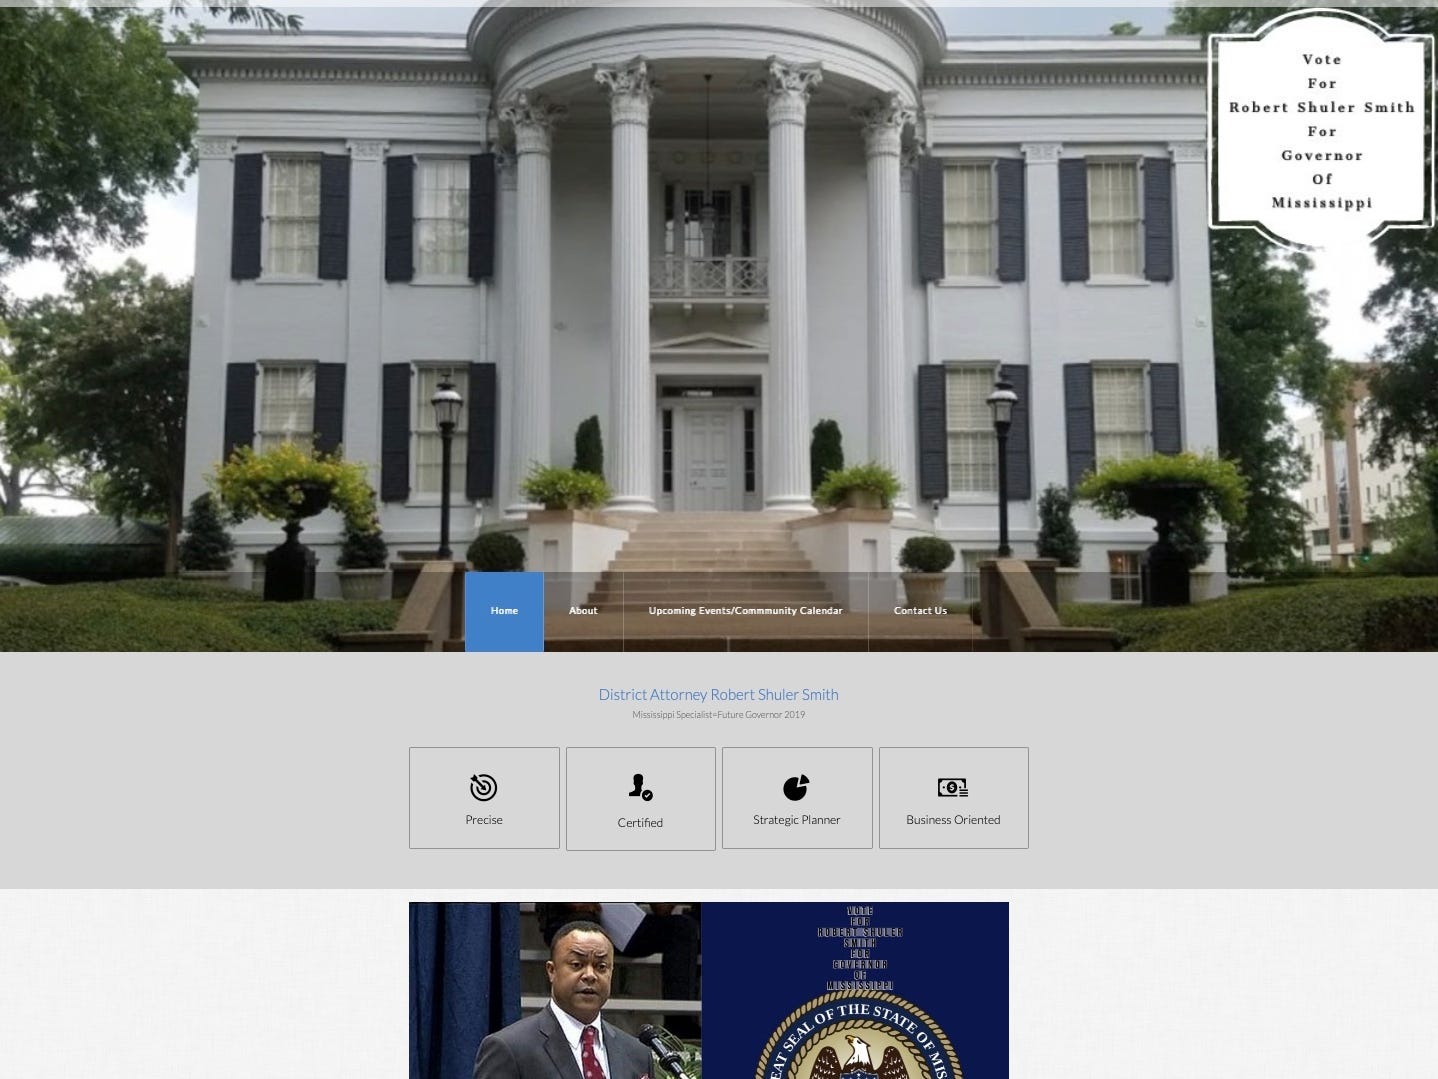 The photos and names of Shuler Smith's supporters on his website aren't real